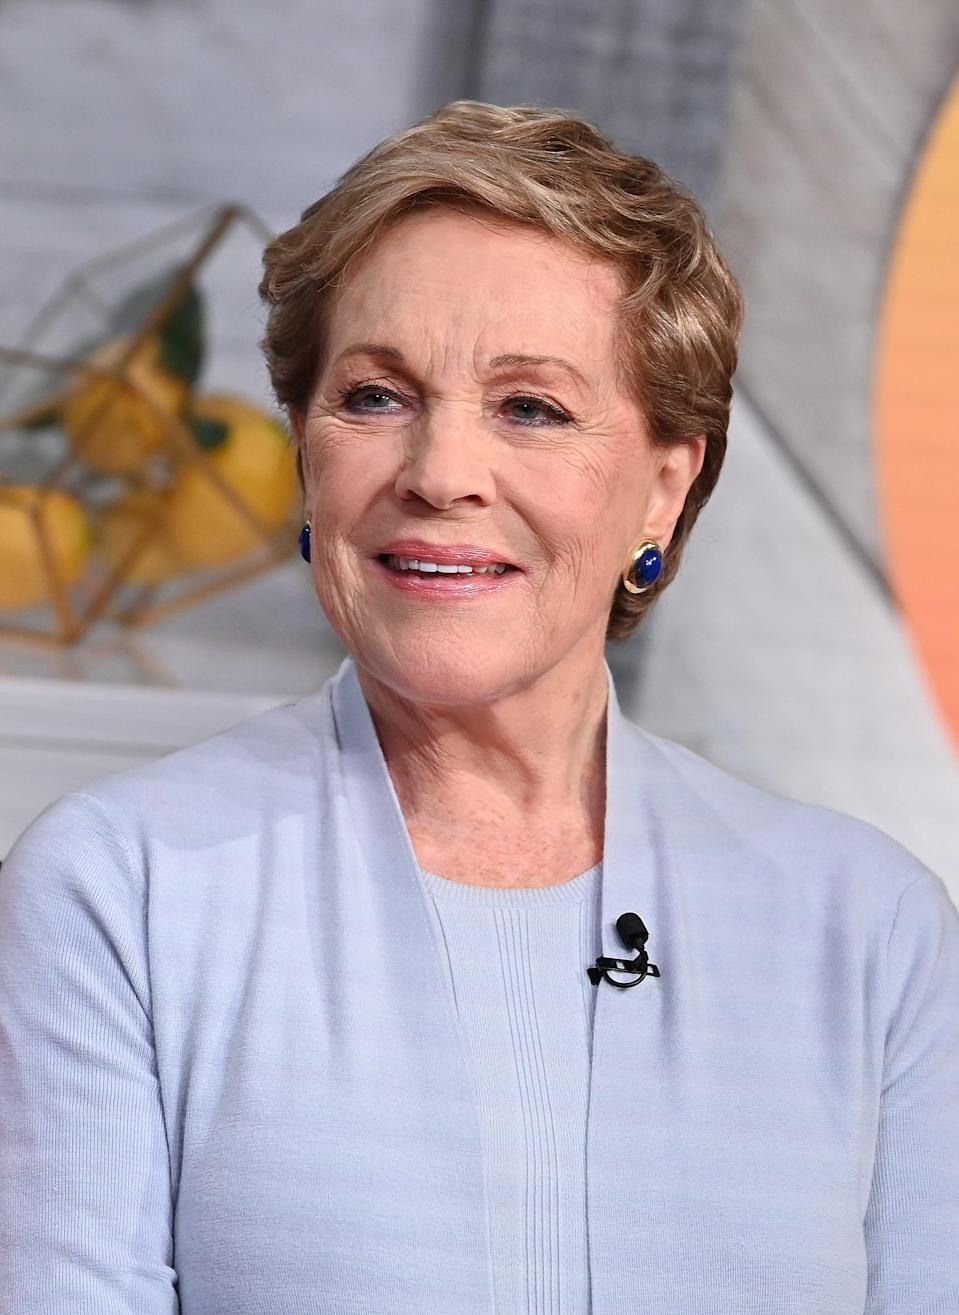 "<p>Best known for <strong>The Sound of Music </strong>and <strong>Mary Poppins</strong>, Julie Andrews was introduced to a new generation with this 2001 millennial classic. Always a queen, Andrews brought her regal sophistication to this year's <strong><a href=""https://www.popsugar.com/latest/Bridgerton"" class=""link rapid-noclick-resp"" rel=""nofollow noopener"" target=""_blank"" data-ylk=""slk:Bridgerton"">Bridgerton</a> </strong>Netflix series. The 85-year-old icon still flexes her stunning singing voice in animation roles like <strong>Shrek </strong>and the upcoming <strong>Minions: The Rise of Gru.</strong></p>"